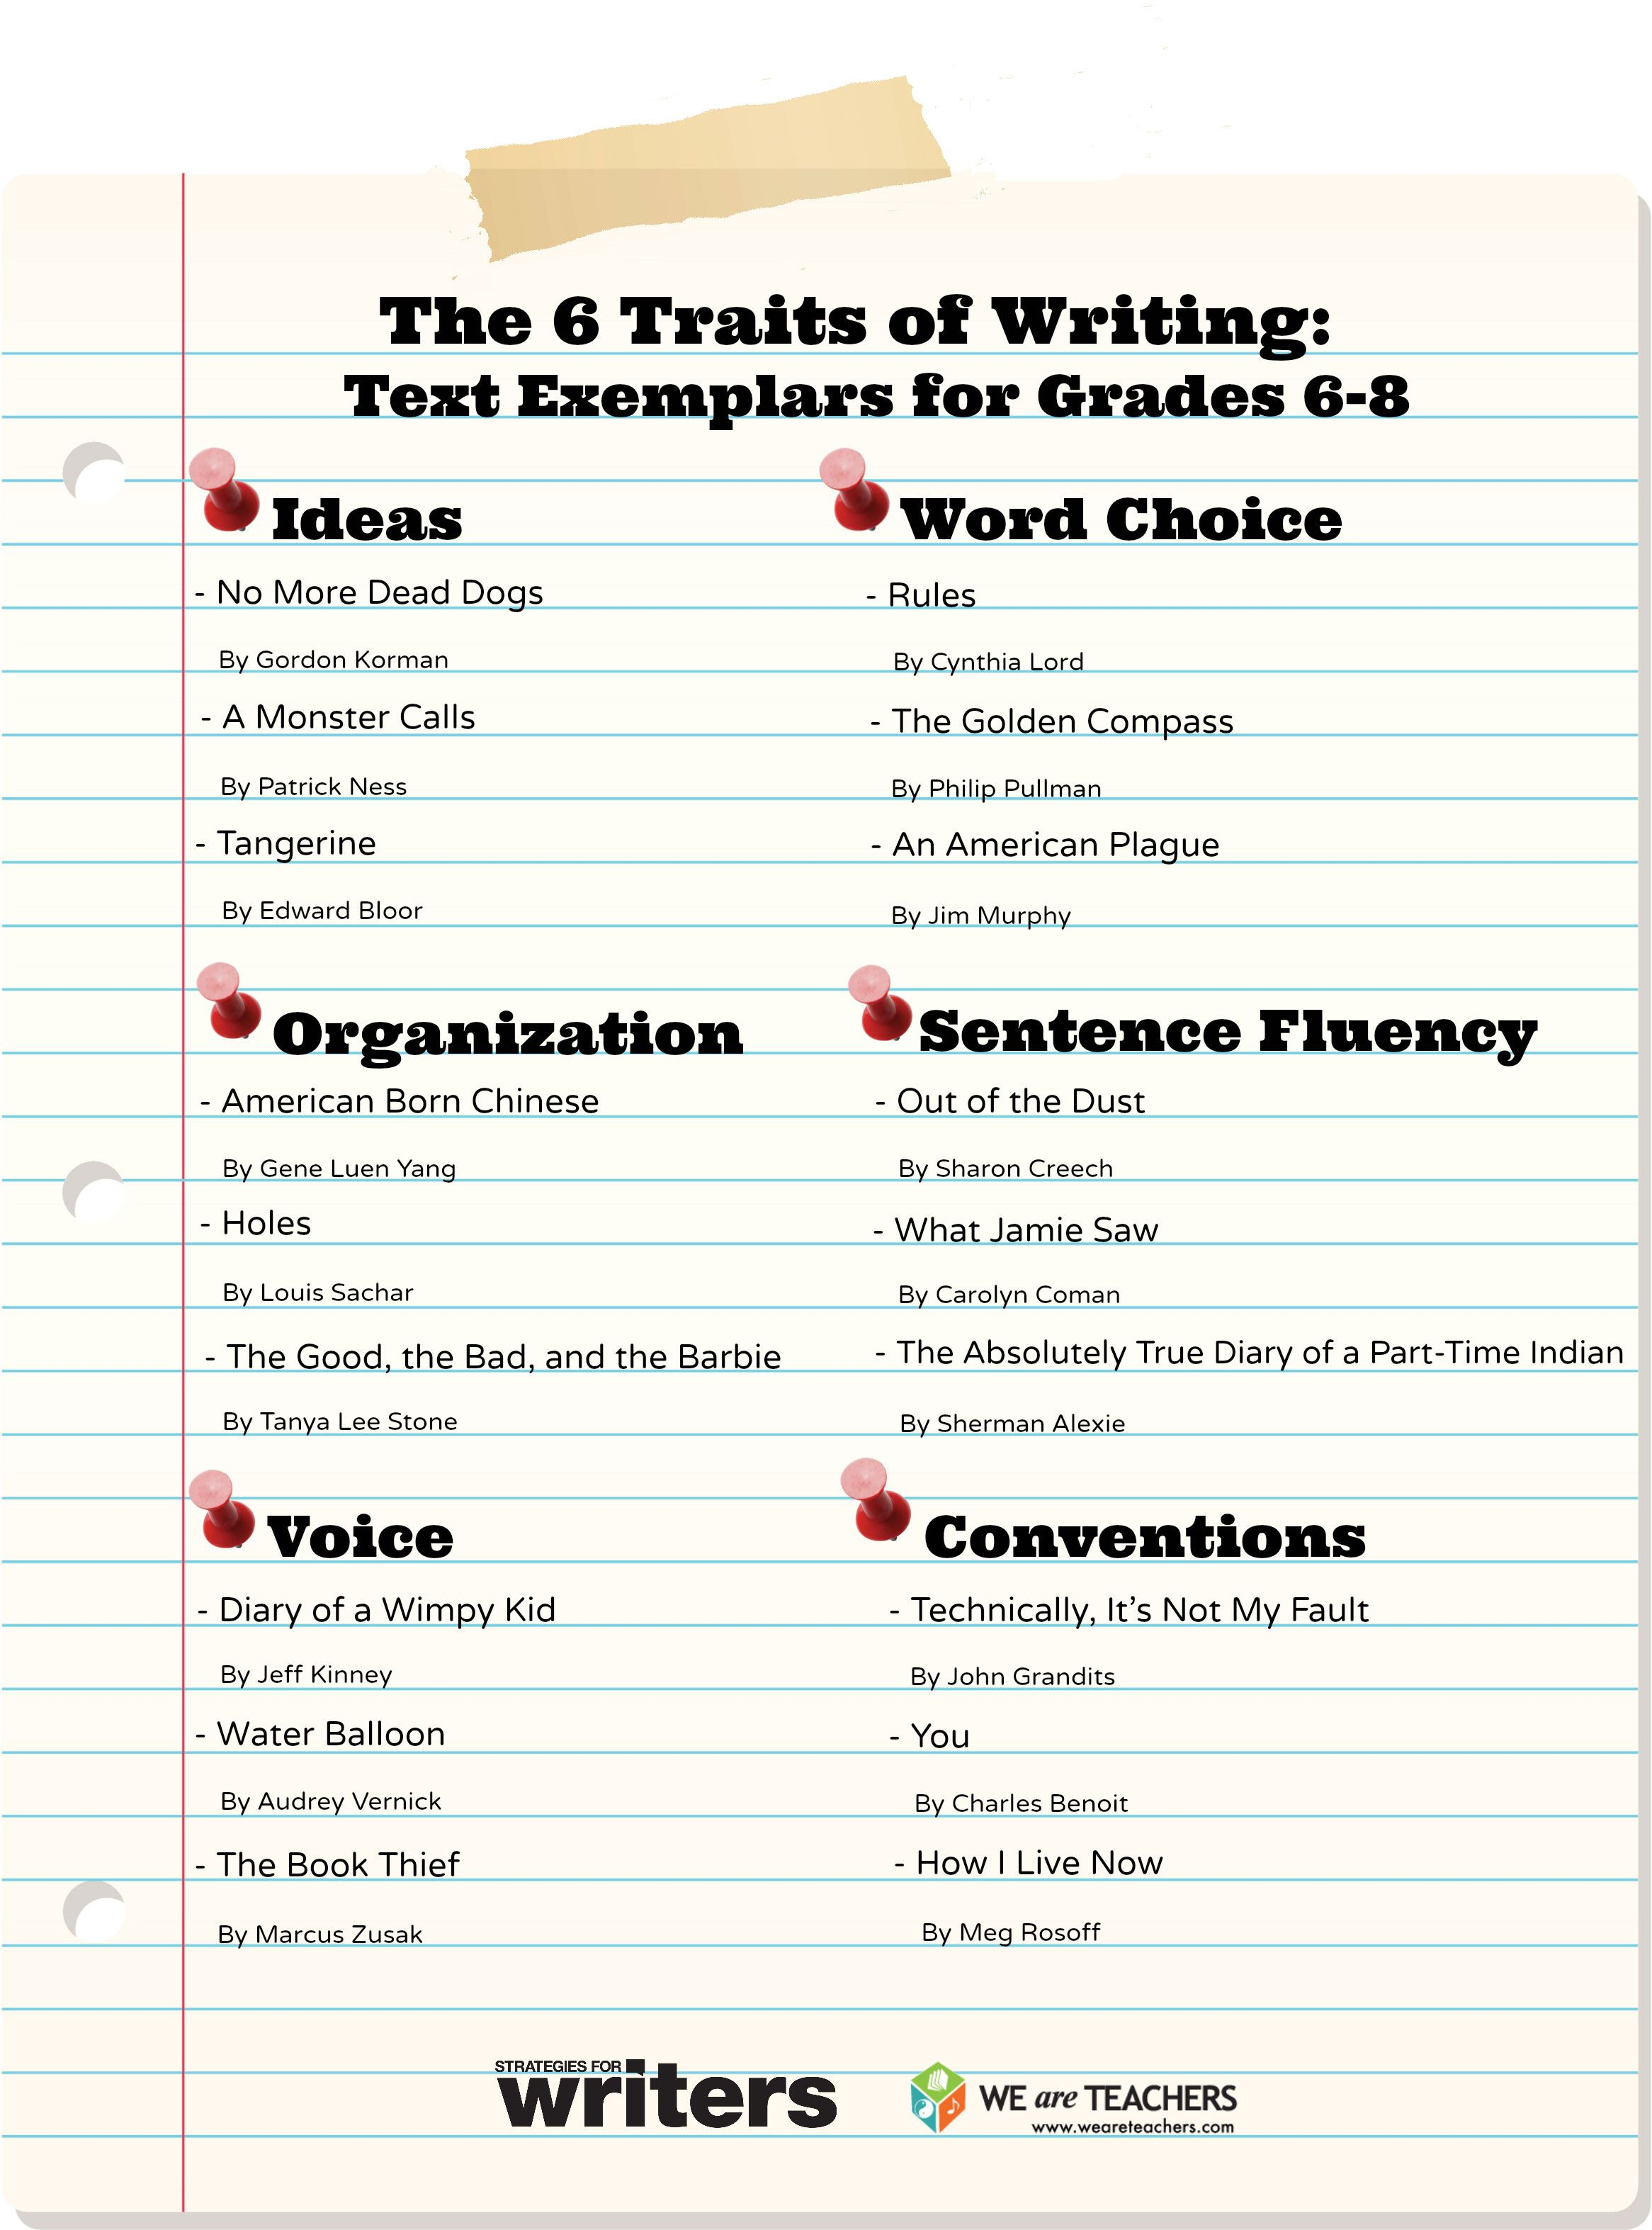 The Six Traits Of Writing Text Exemplars For Grades 6 8